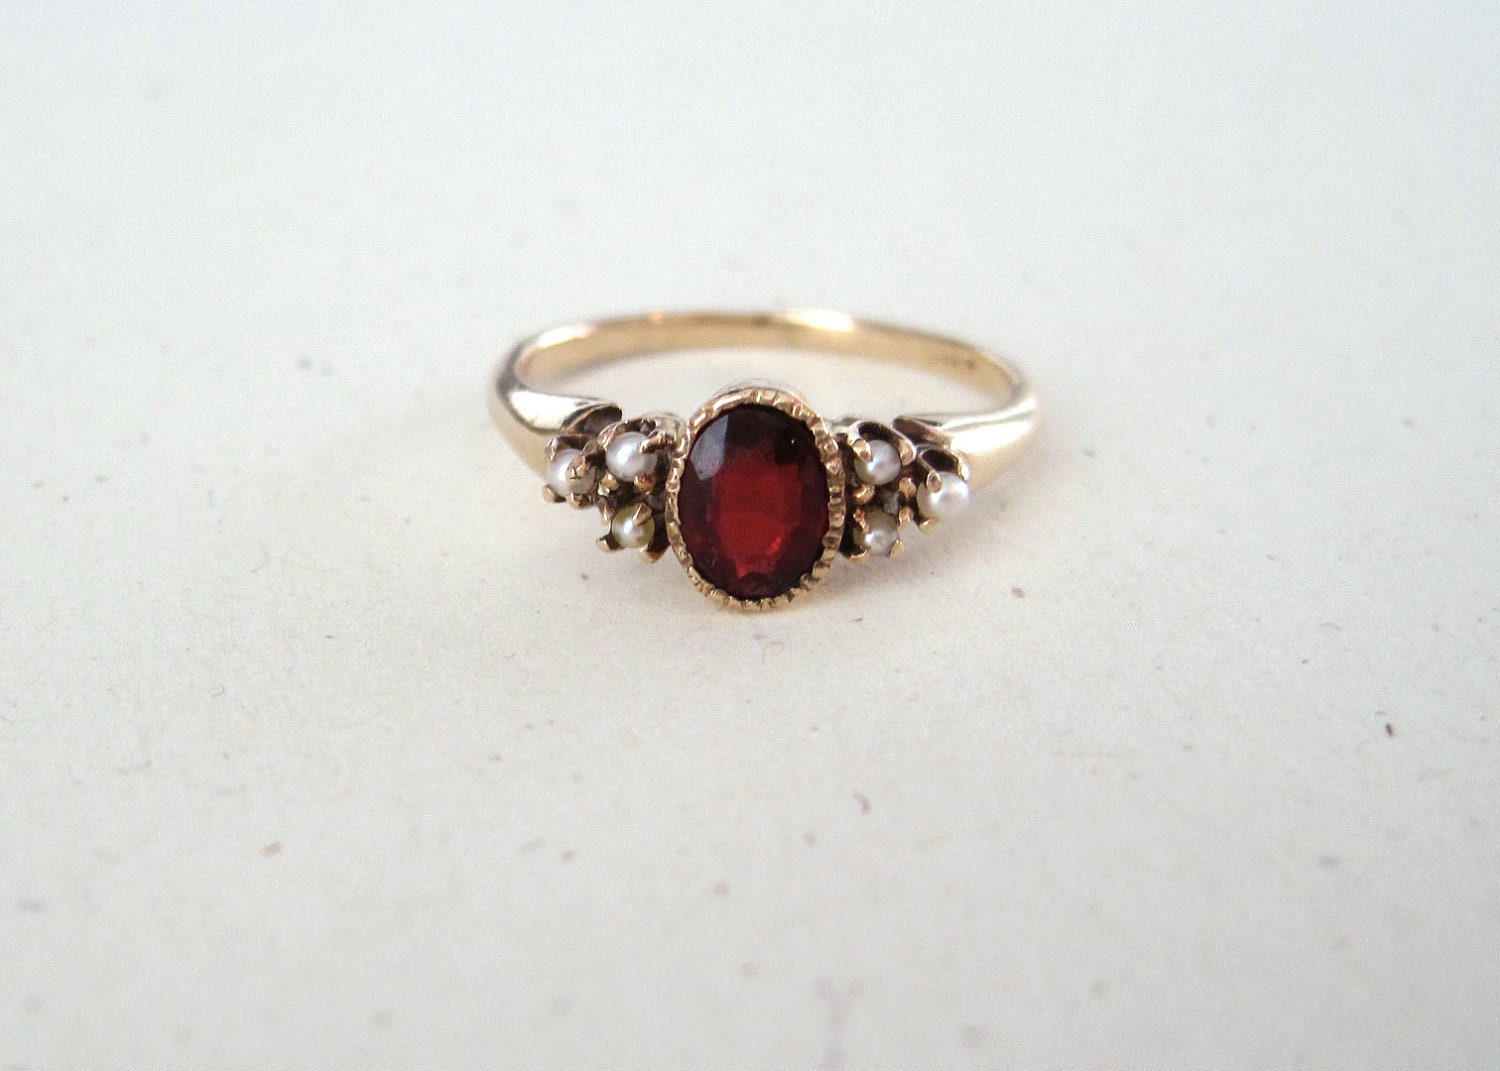 Antique Victorian Garnet And Seed Pearl 10k Yellow Gold Ring